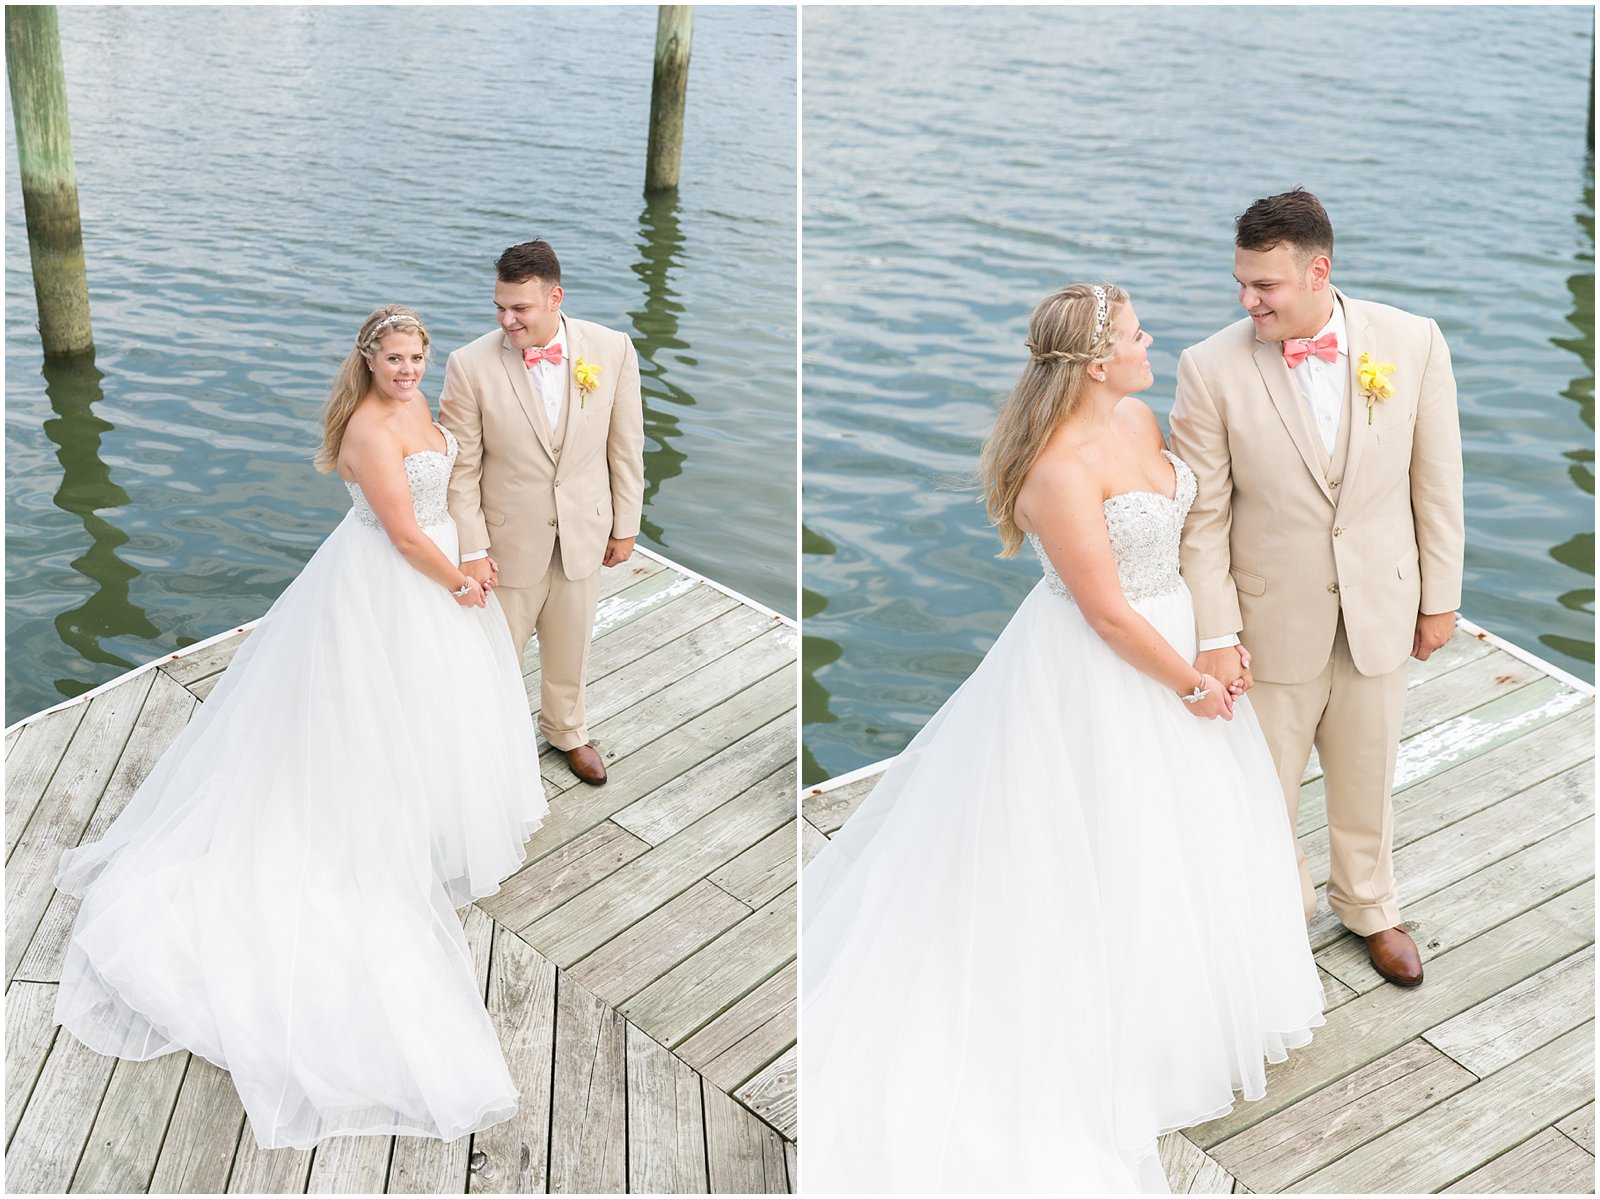 jessica_ryan_photography_wedding_virginia_beach_virginia_wedding_photographer_candid_wedding_photography_lifestyle_photojournalistic_real_moments_0112